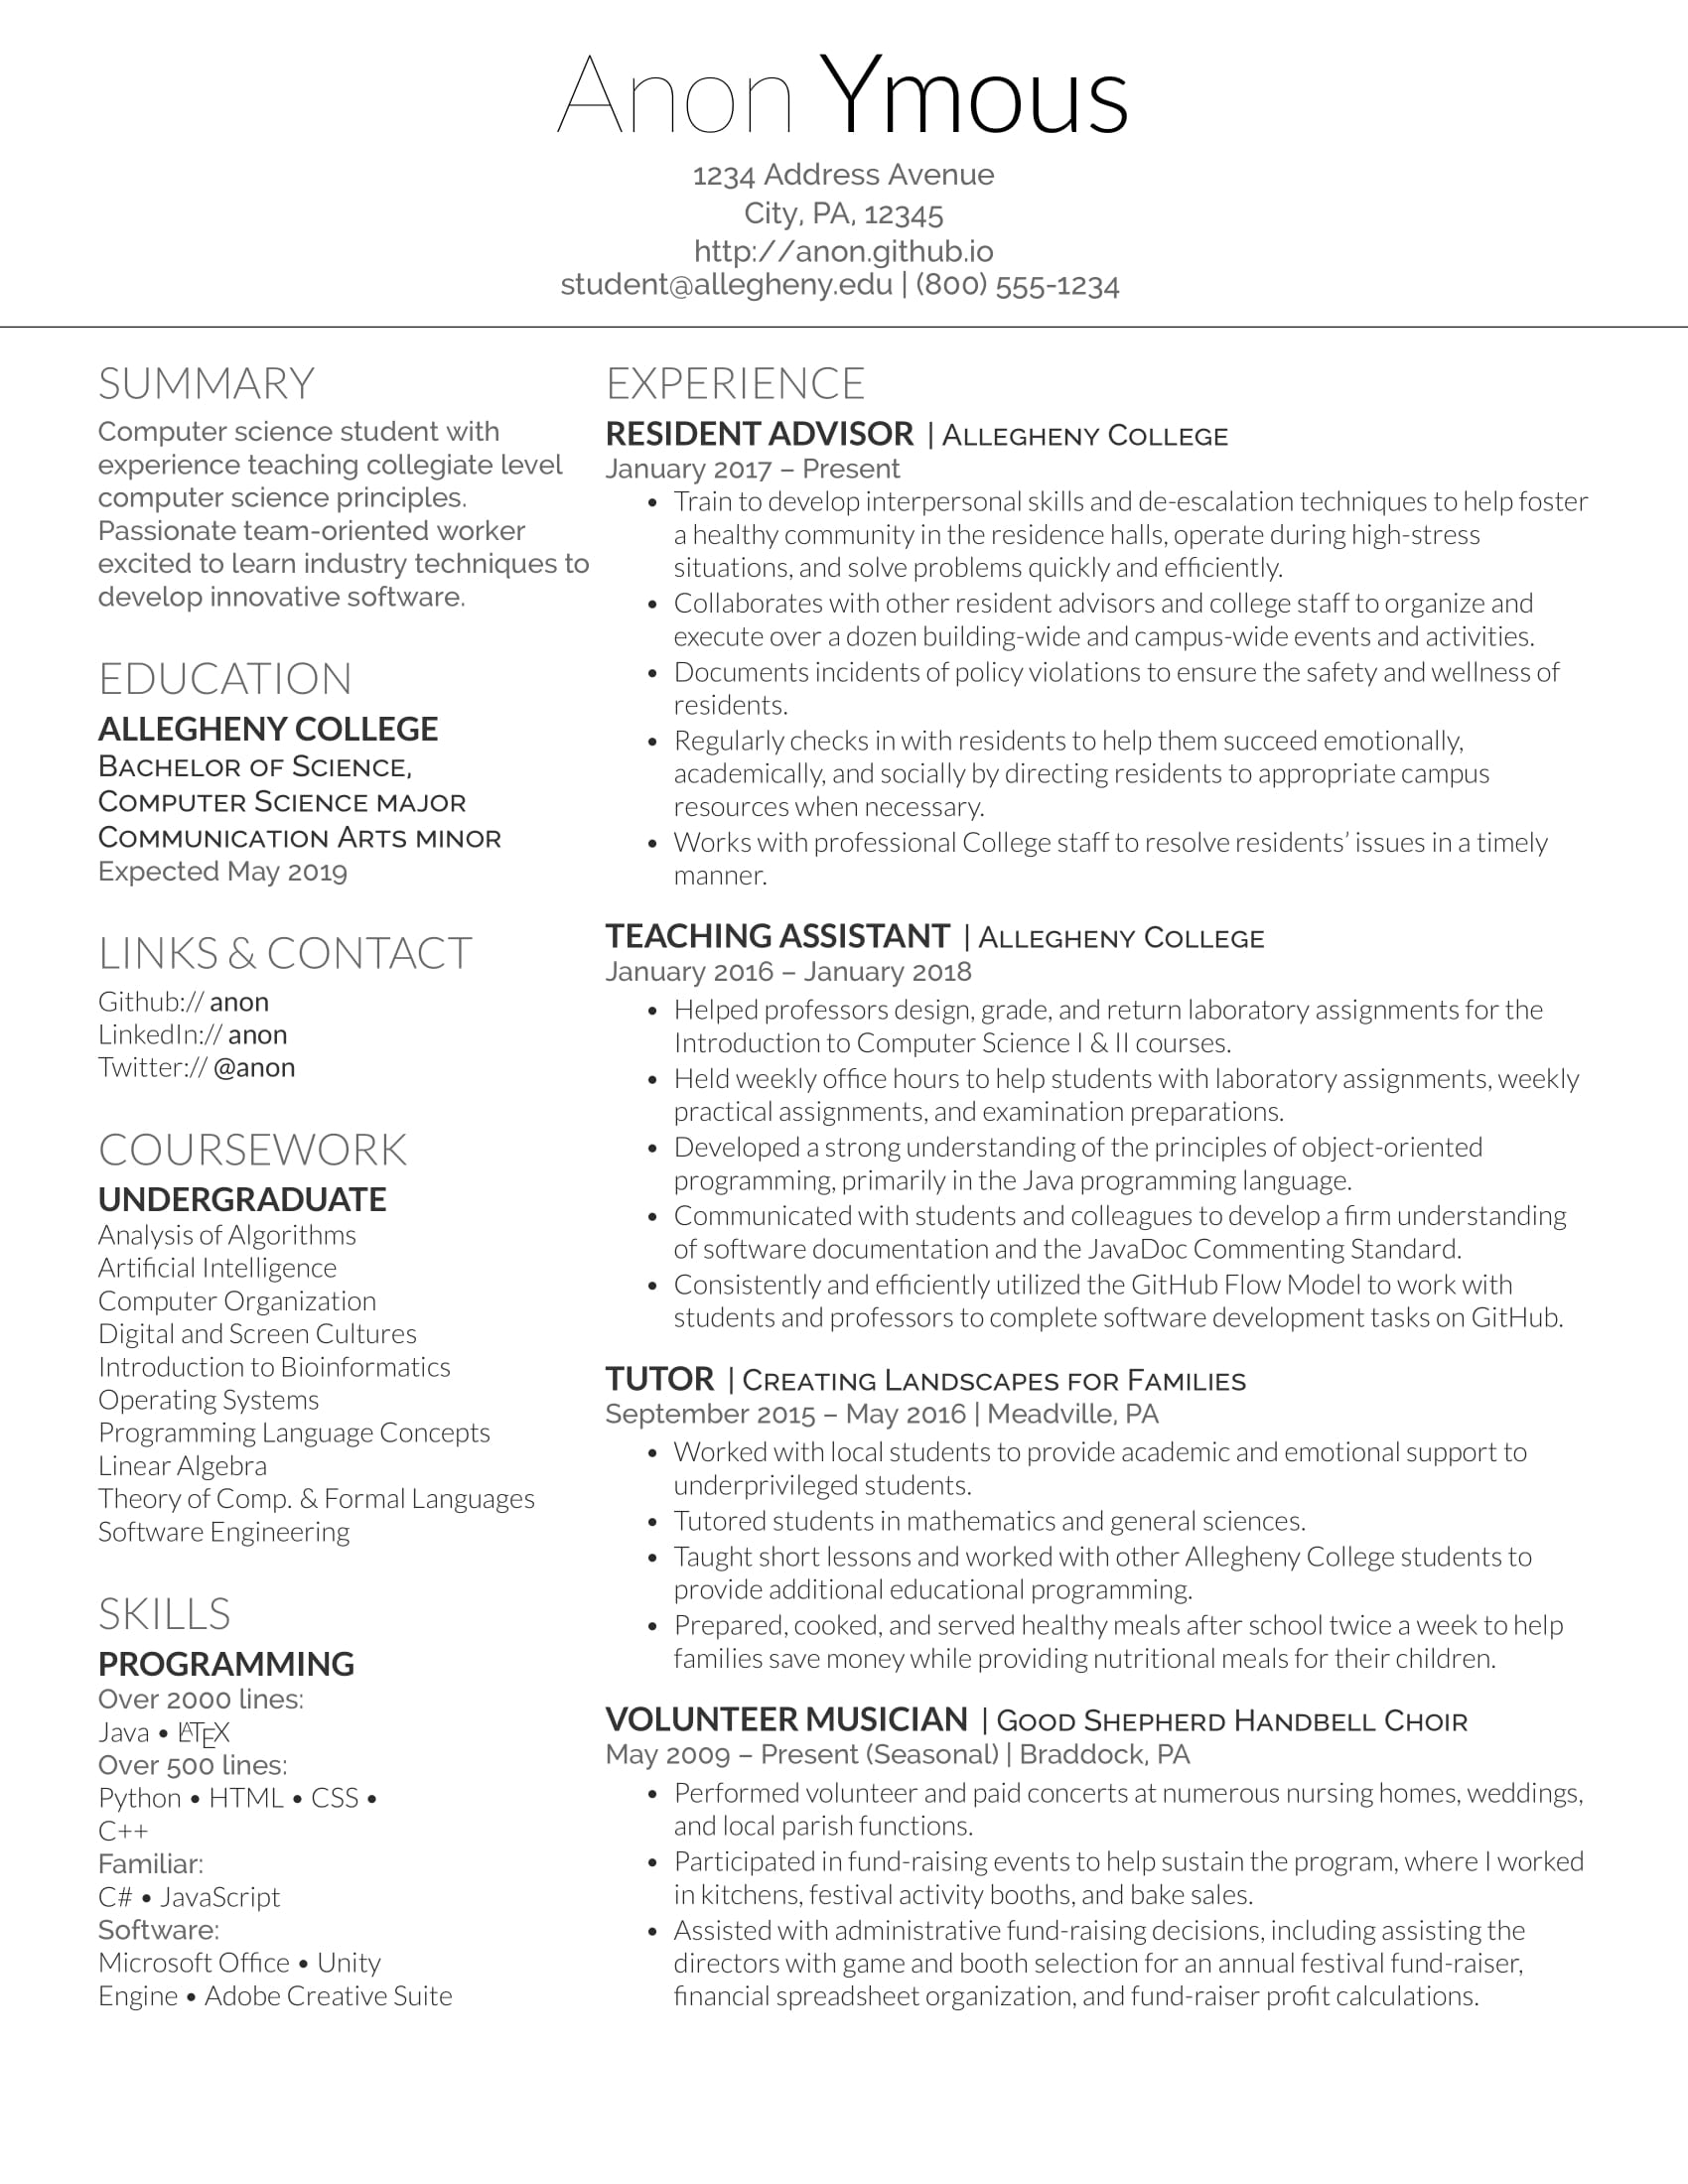 constructively critique my resume please undergrad first time resumes latex template Resume Latex Resume Template Reddit